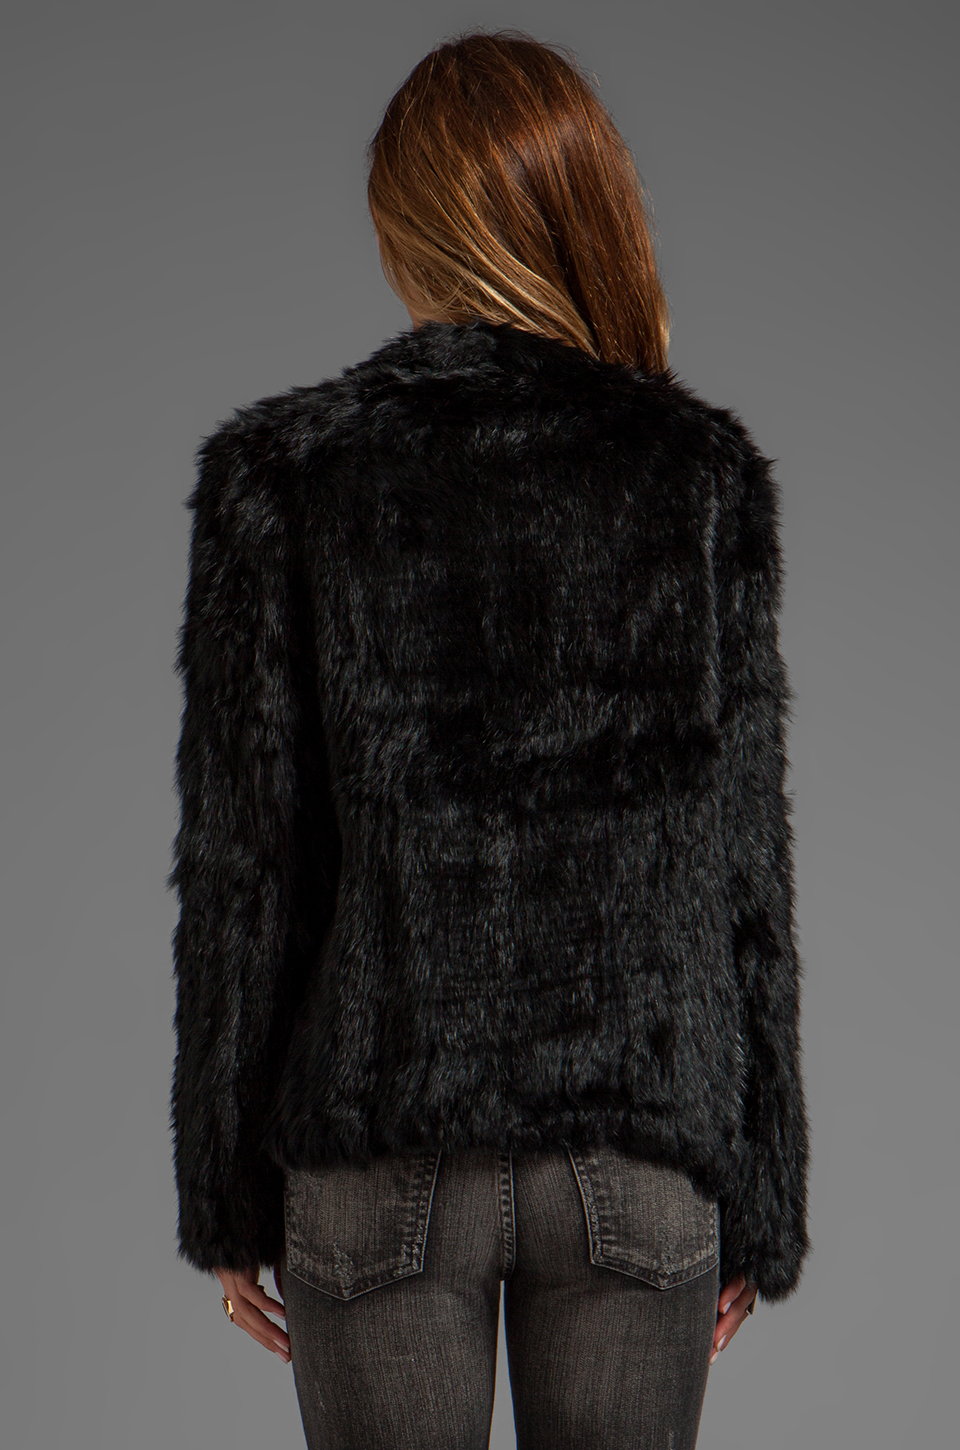 Buy Yves Salomon Black Knitted Rabbit Jacket on dexterminduwi.ga and get free shipping & returns in US. Long sleeve dyed rabbit fur jacket in black. Scoop neck collar. Hook closure at front. Tonal stitching.